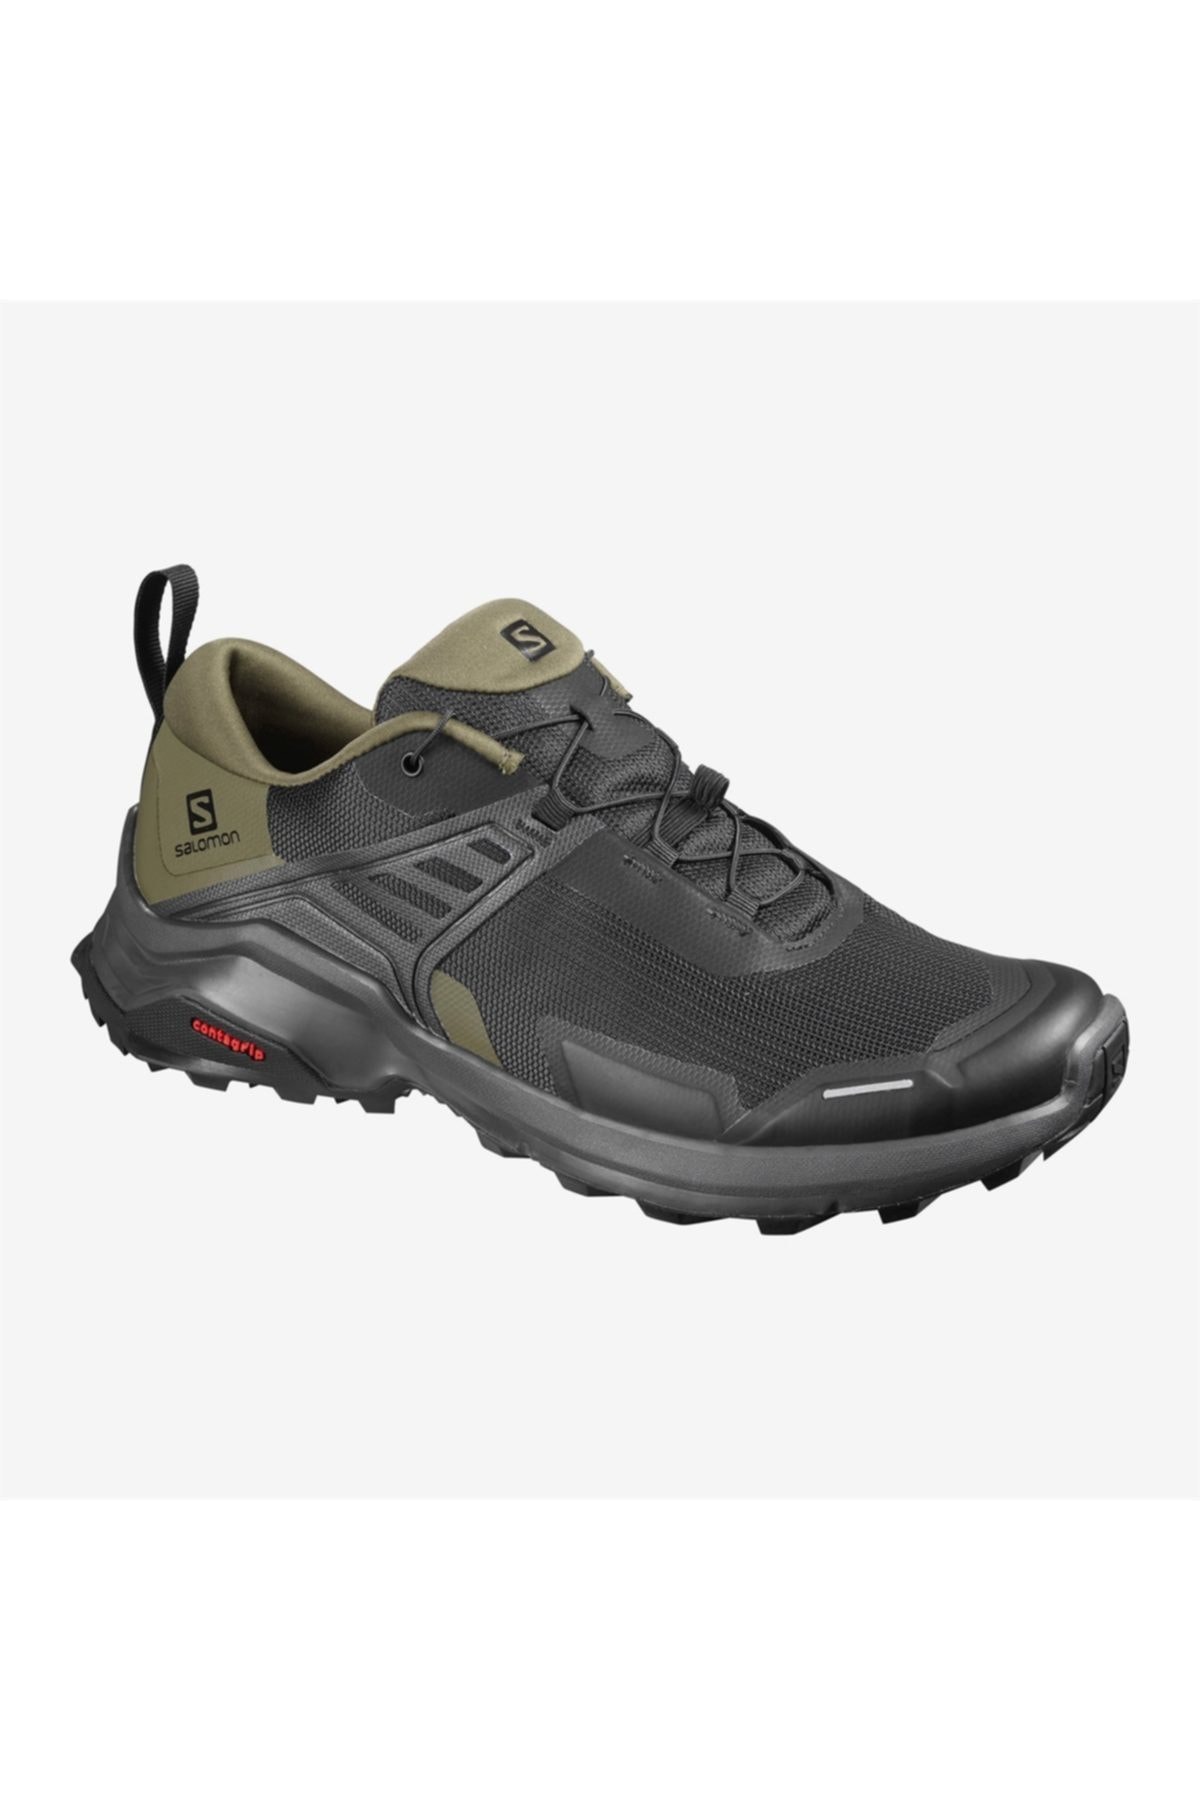 Salomon X Raıse Erkek Outdoor Ayakkabı - L41041200-black/grape Leaf/phantom 1